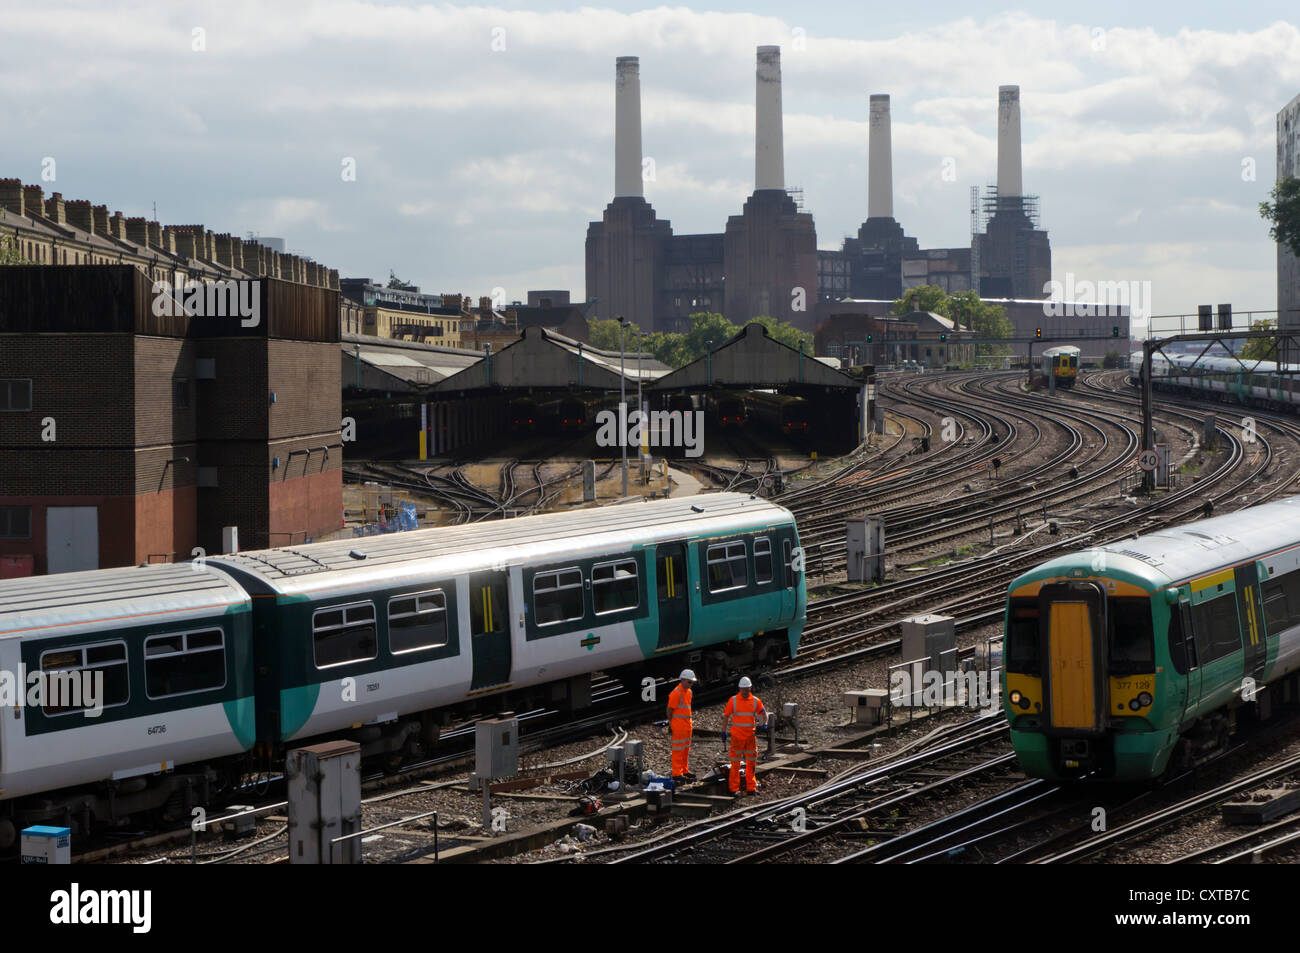 Trains approaching London Victoria station from South London. - Stock Image